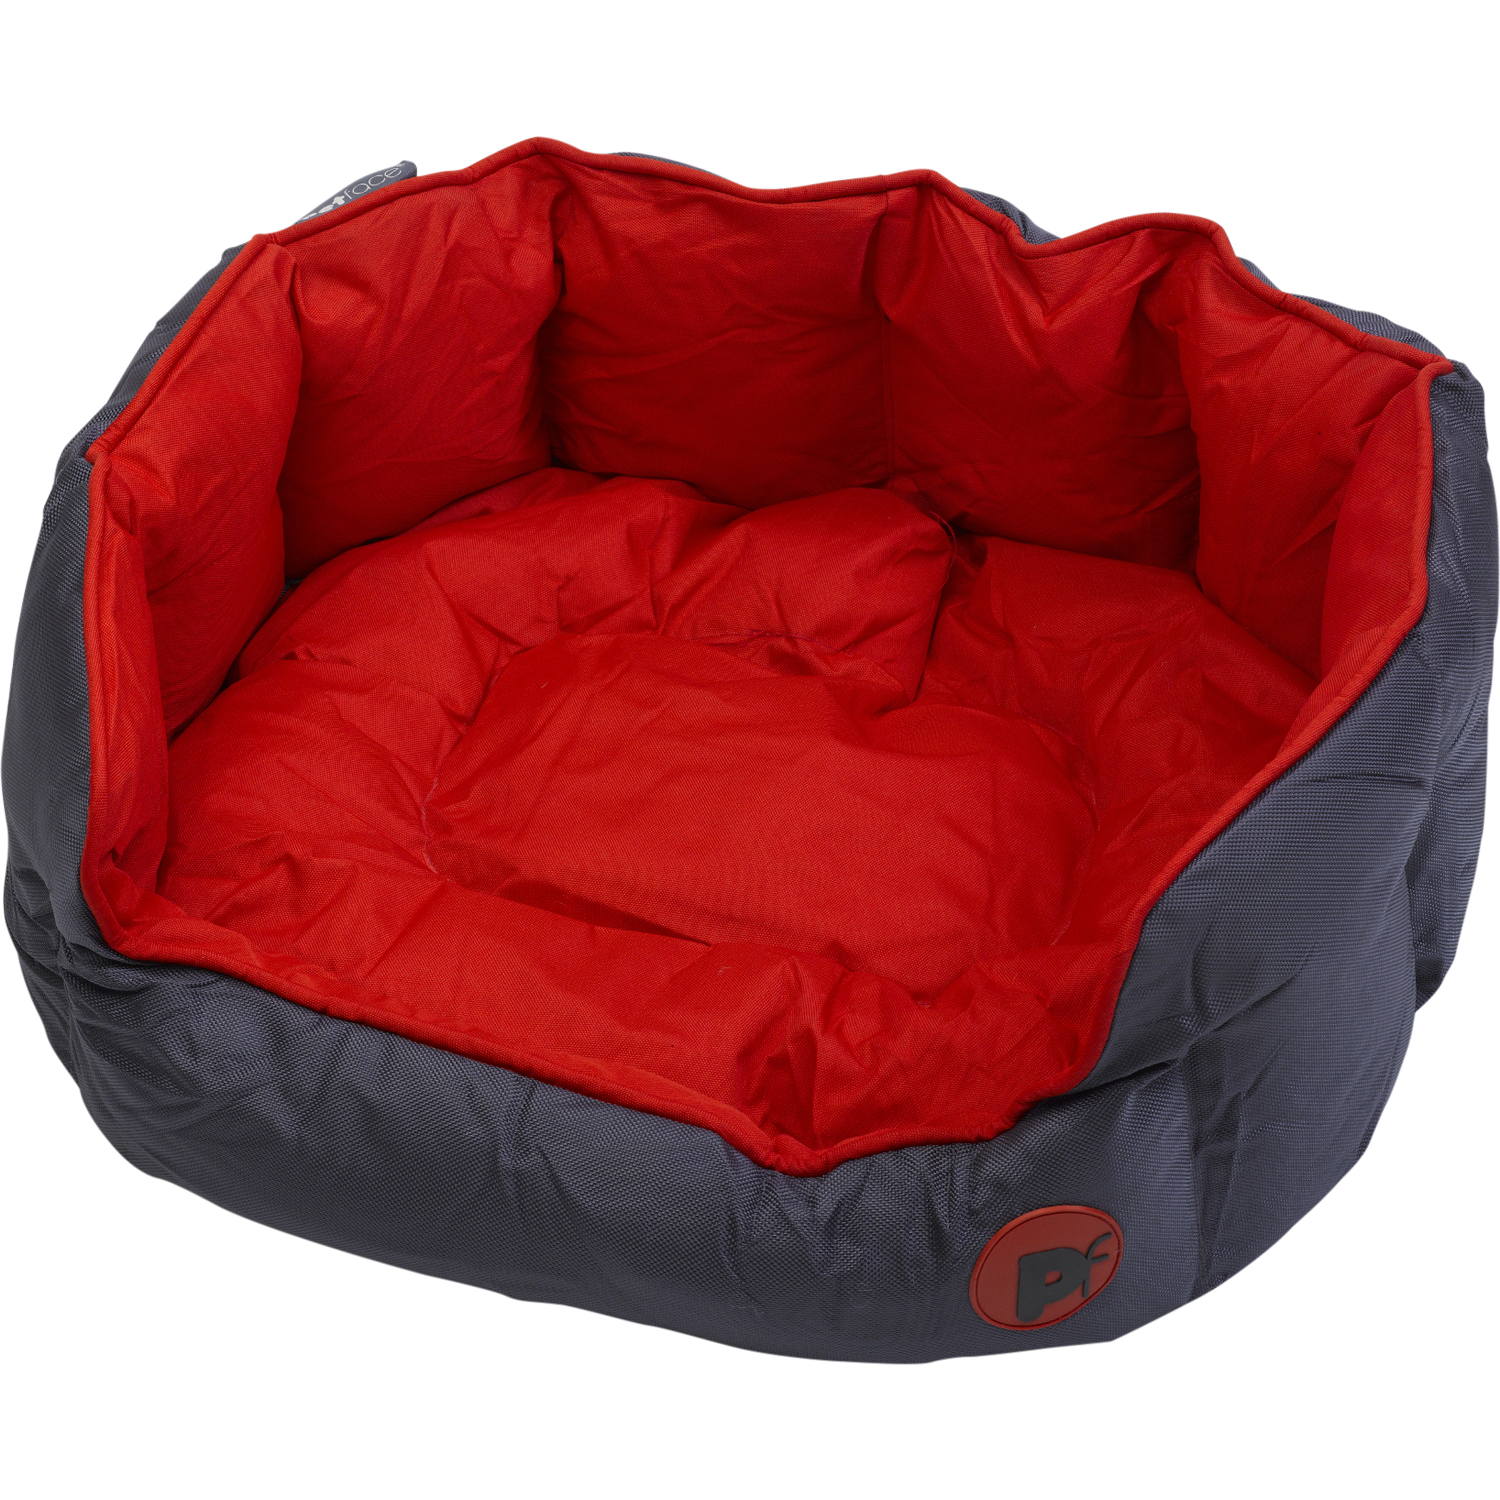 Petface Waterproof Oxford Pet Bed Puppy Dog Luxury Oval Red